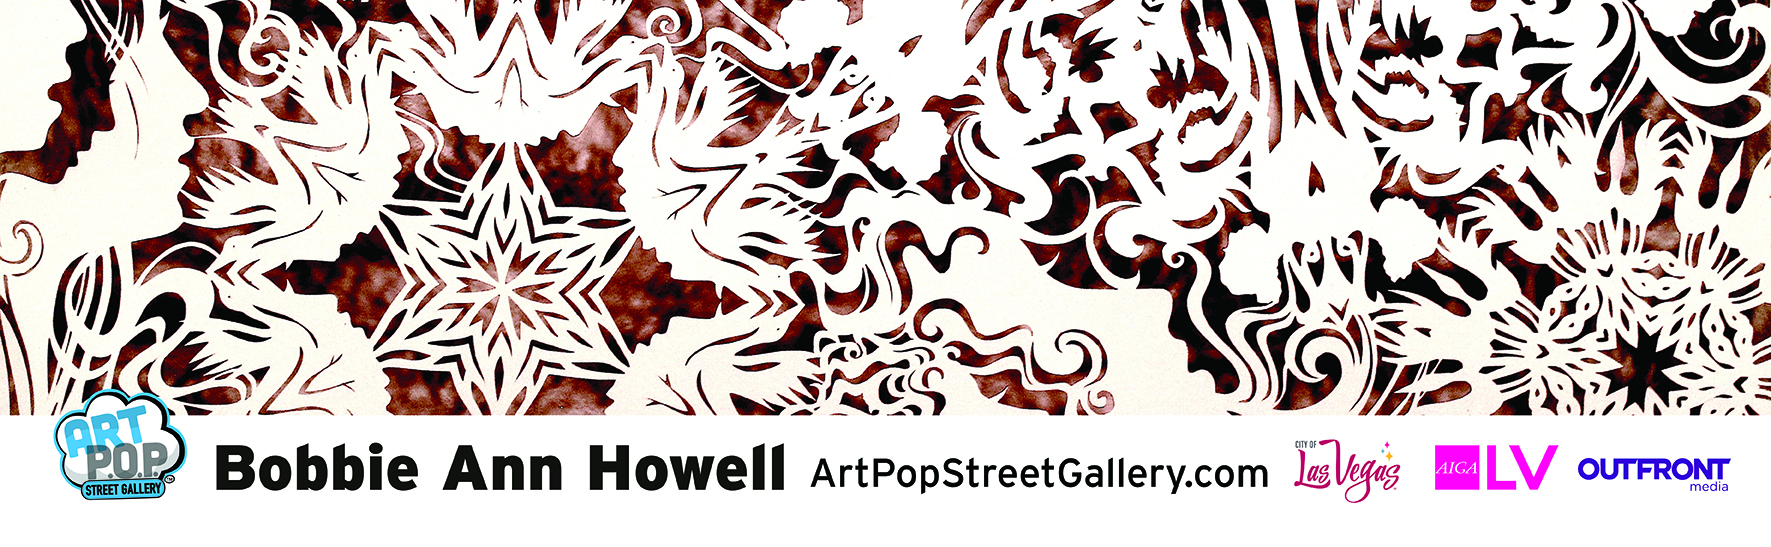 To contact artist, please email:  bobbieann_howell@hotmail.com